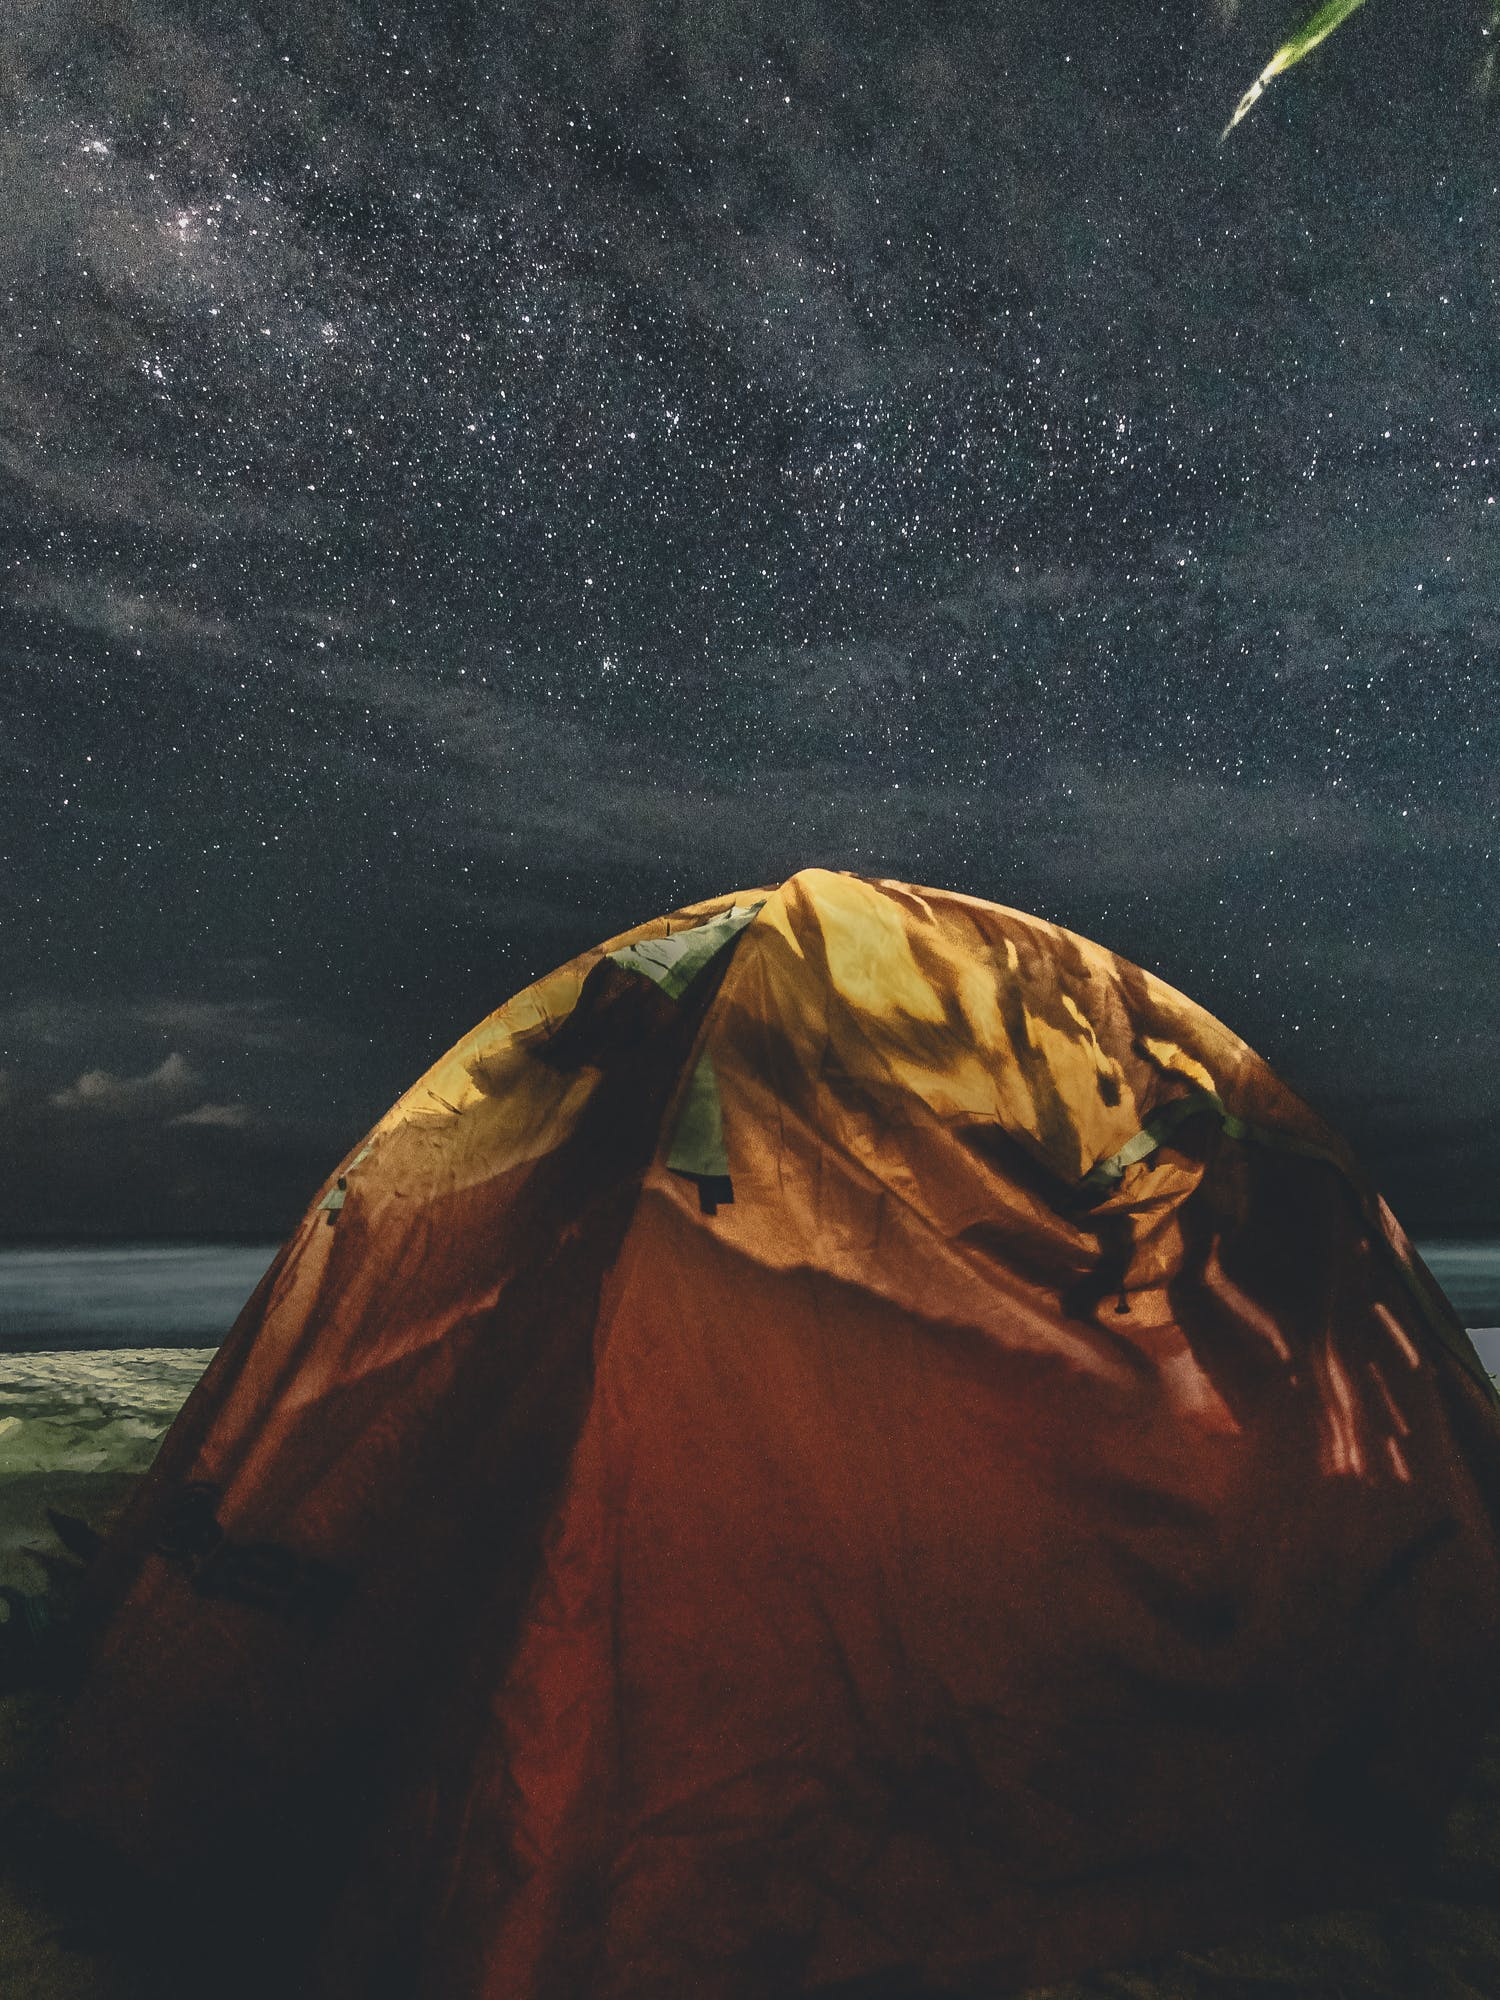 Orange and Green Camping Tent Under Starry Sky